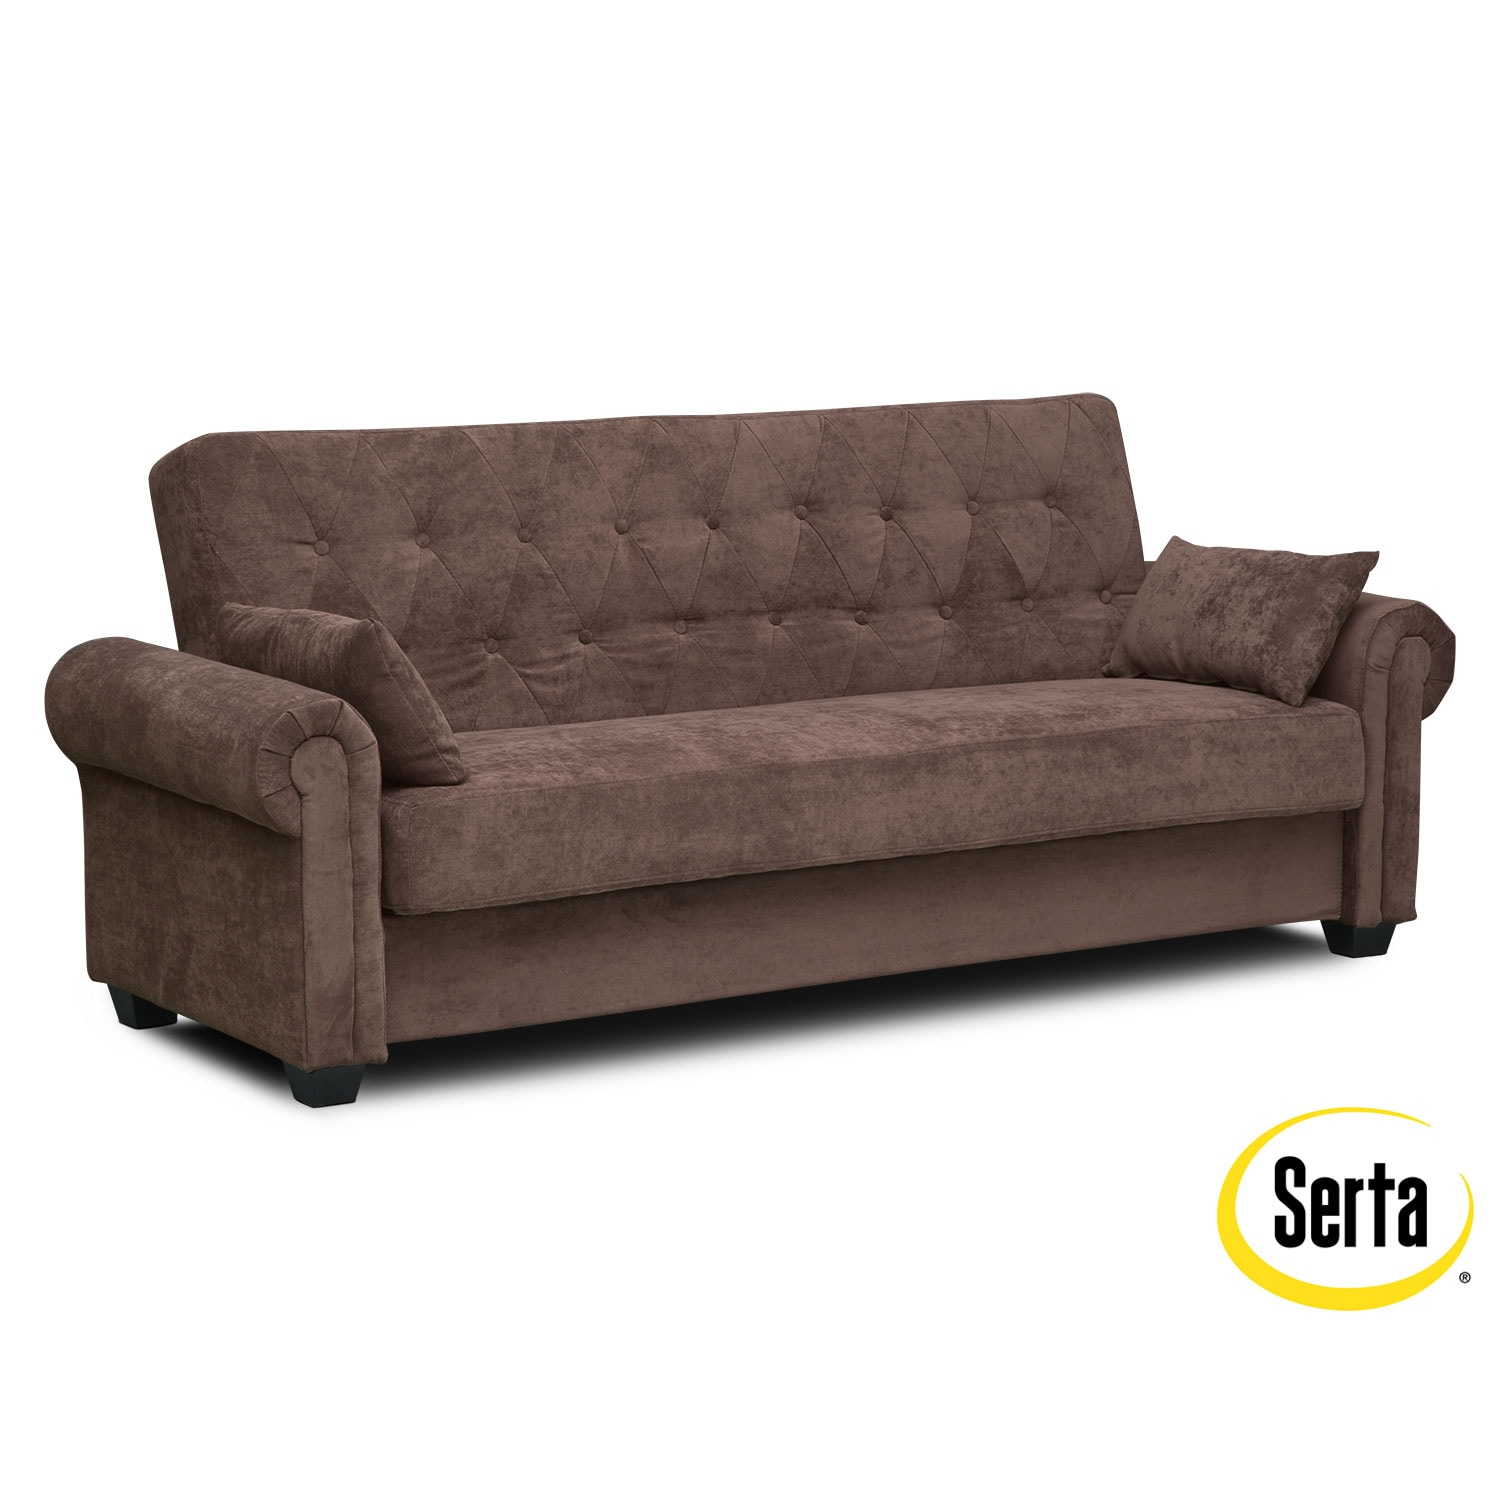 Andrea Futon Sofa Bed with Storage - Java